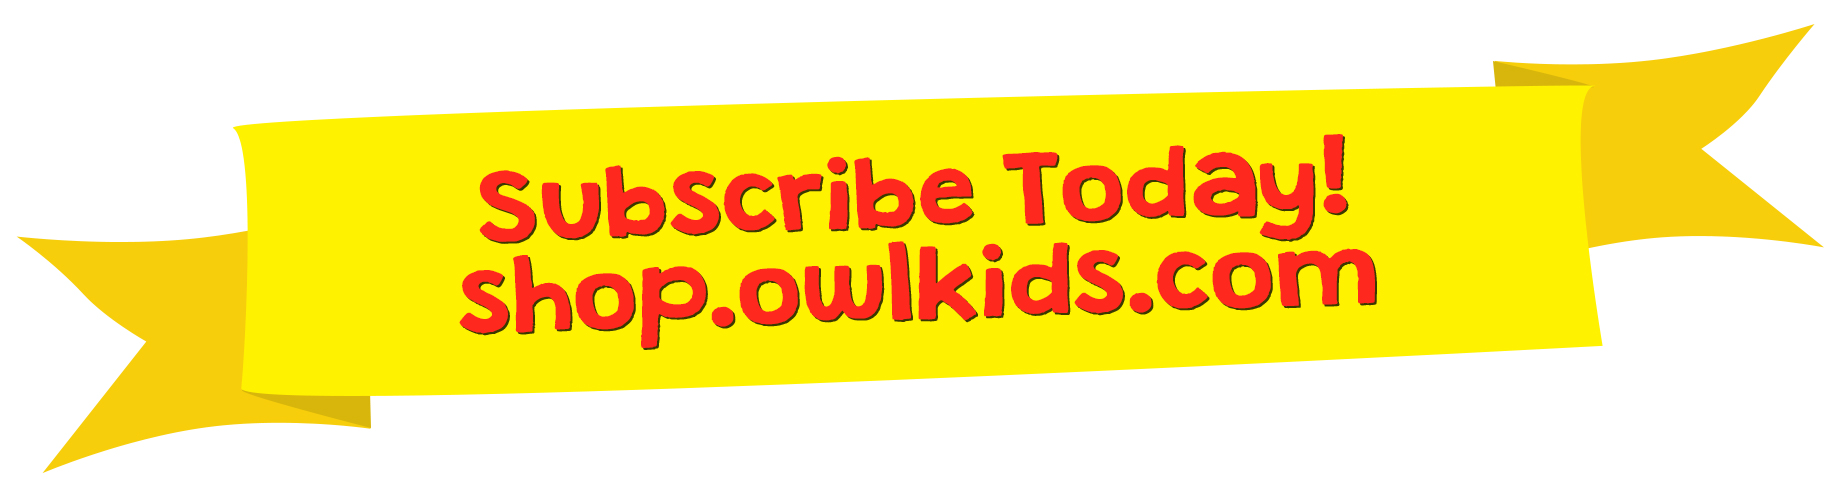 Subscribe Today banner